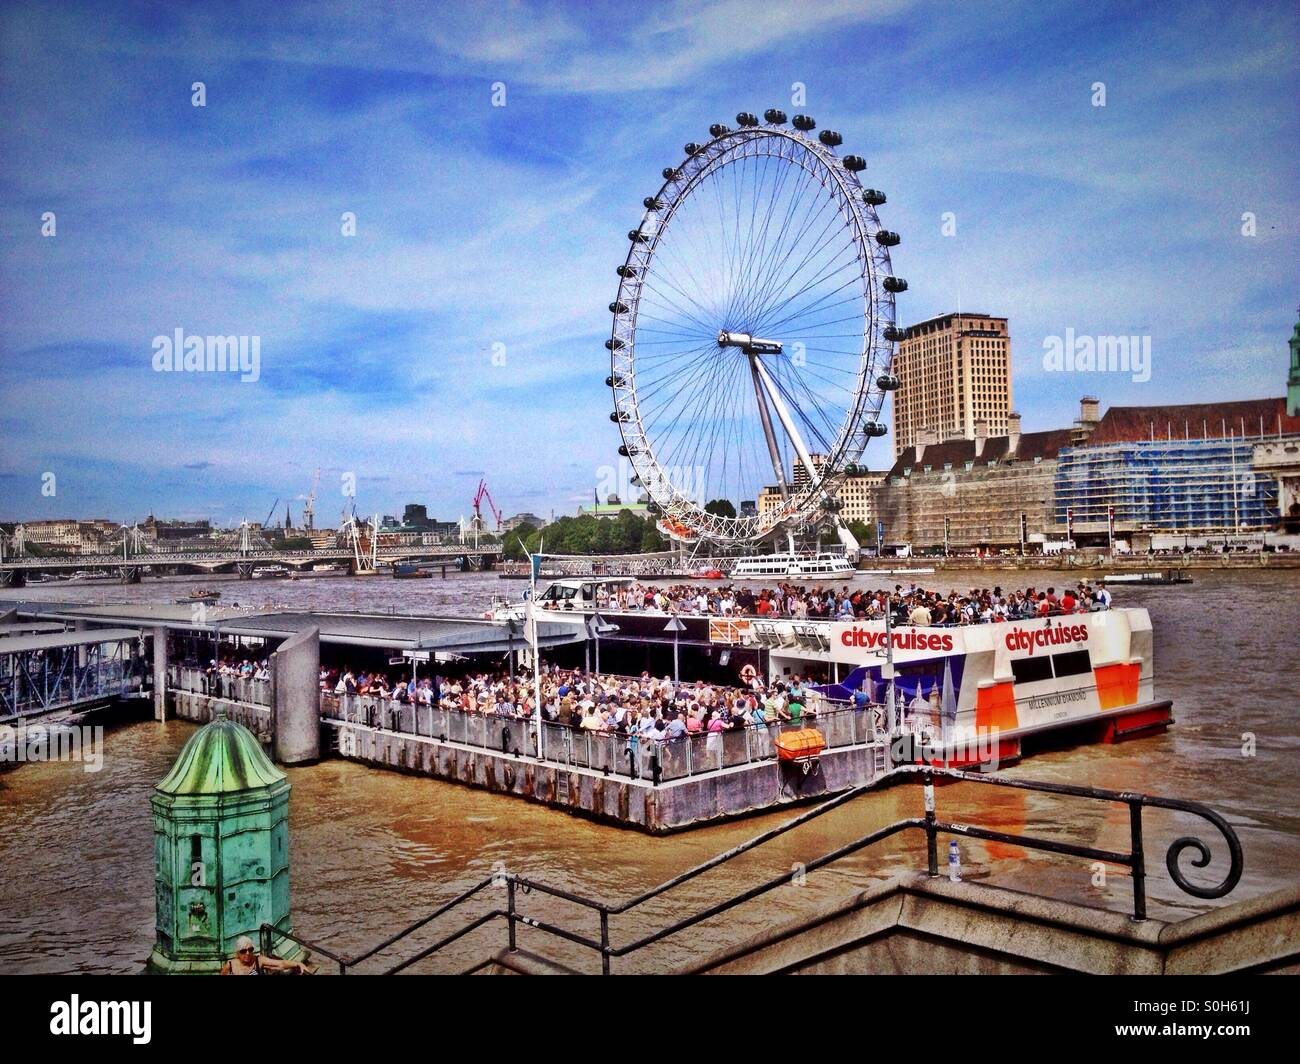 River cruise on The River Thames. - Stock Image